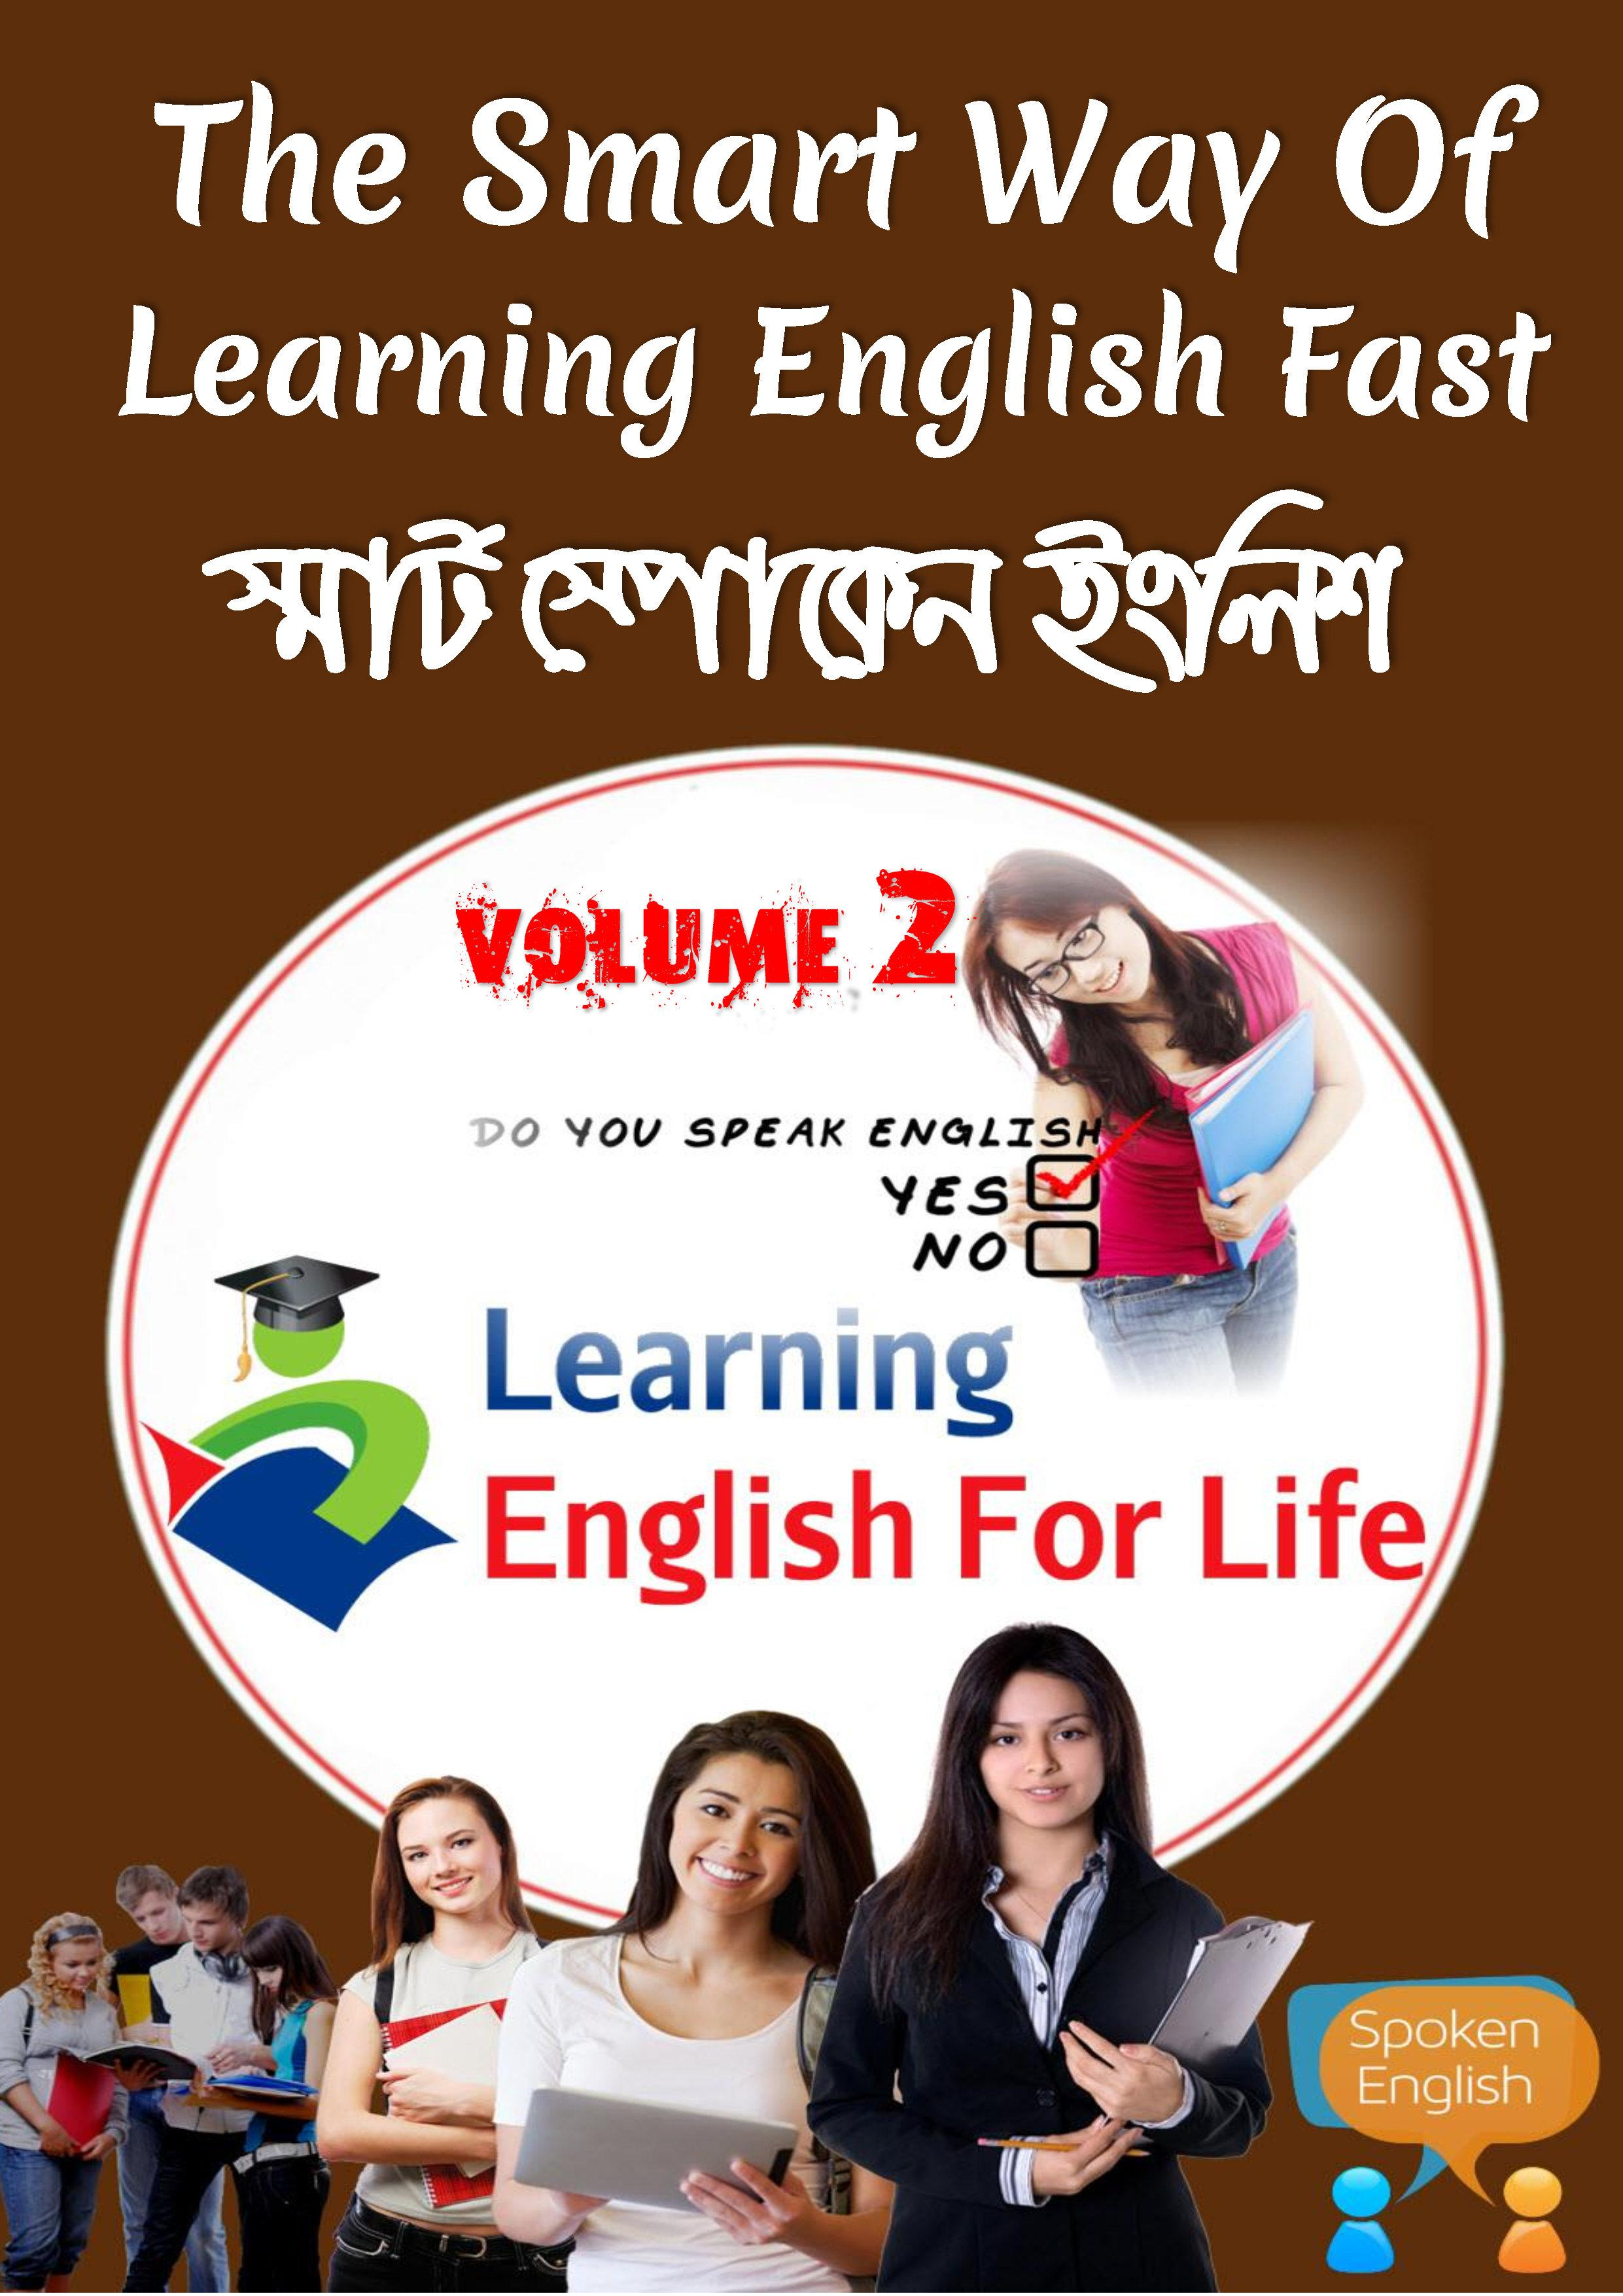 Thumbnail of The Smart Way Of Learning English Fast 2